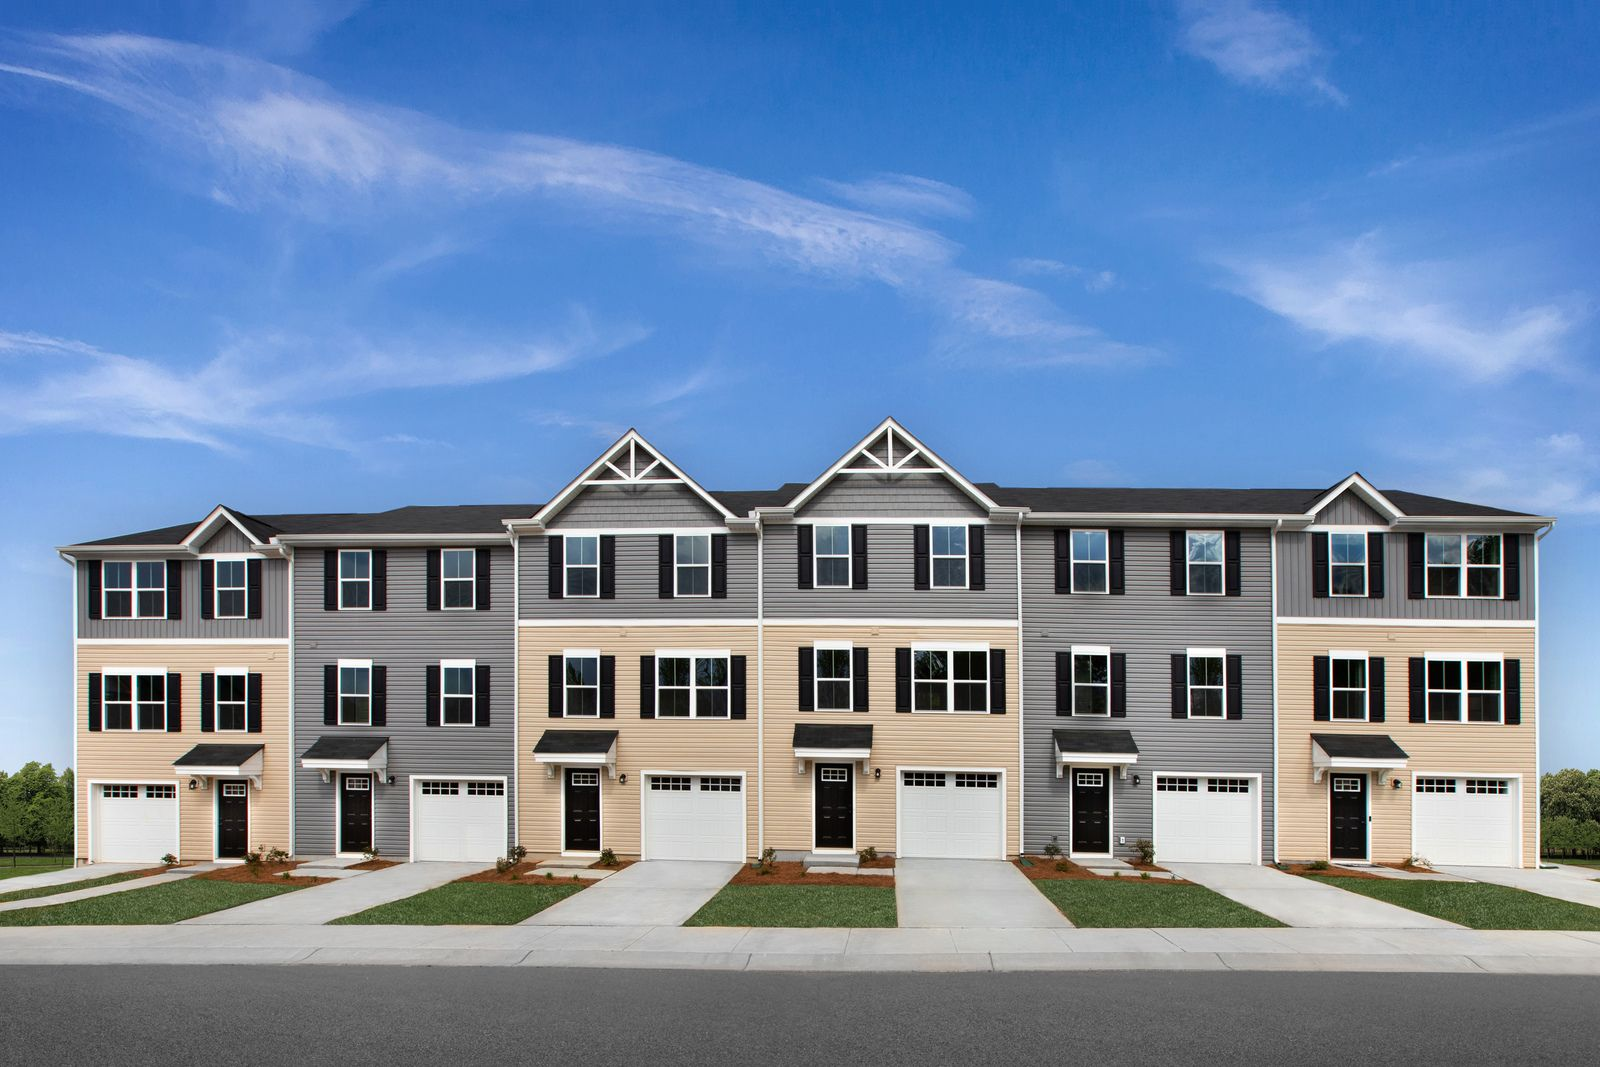 Experience the pride of homeownership in Foxhill Townes:Own a new 1-car garage Townhome w/ your own private yard. Enjoy living near Langley and Norfolk Naval.Schedule a visit today to see!